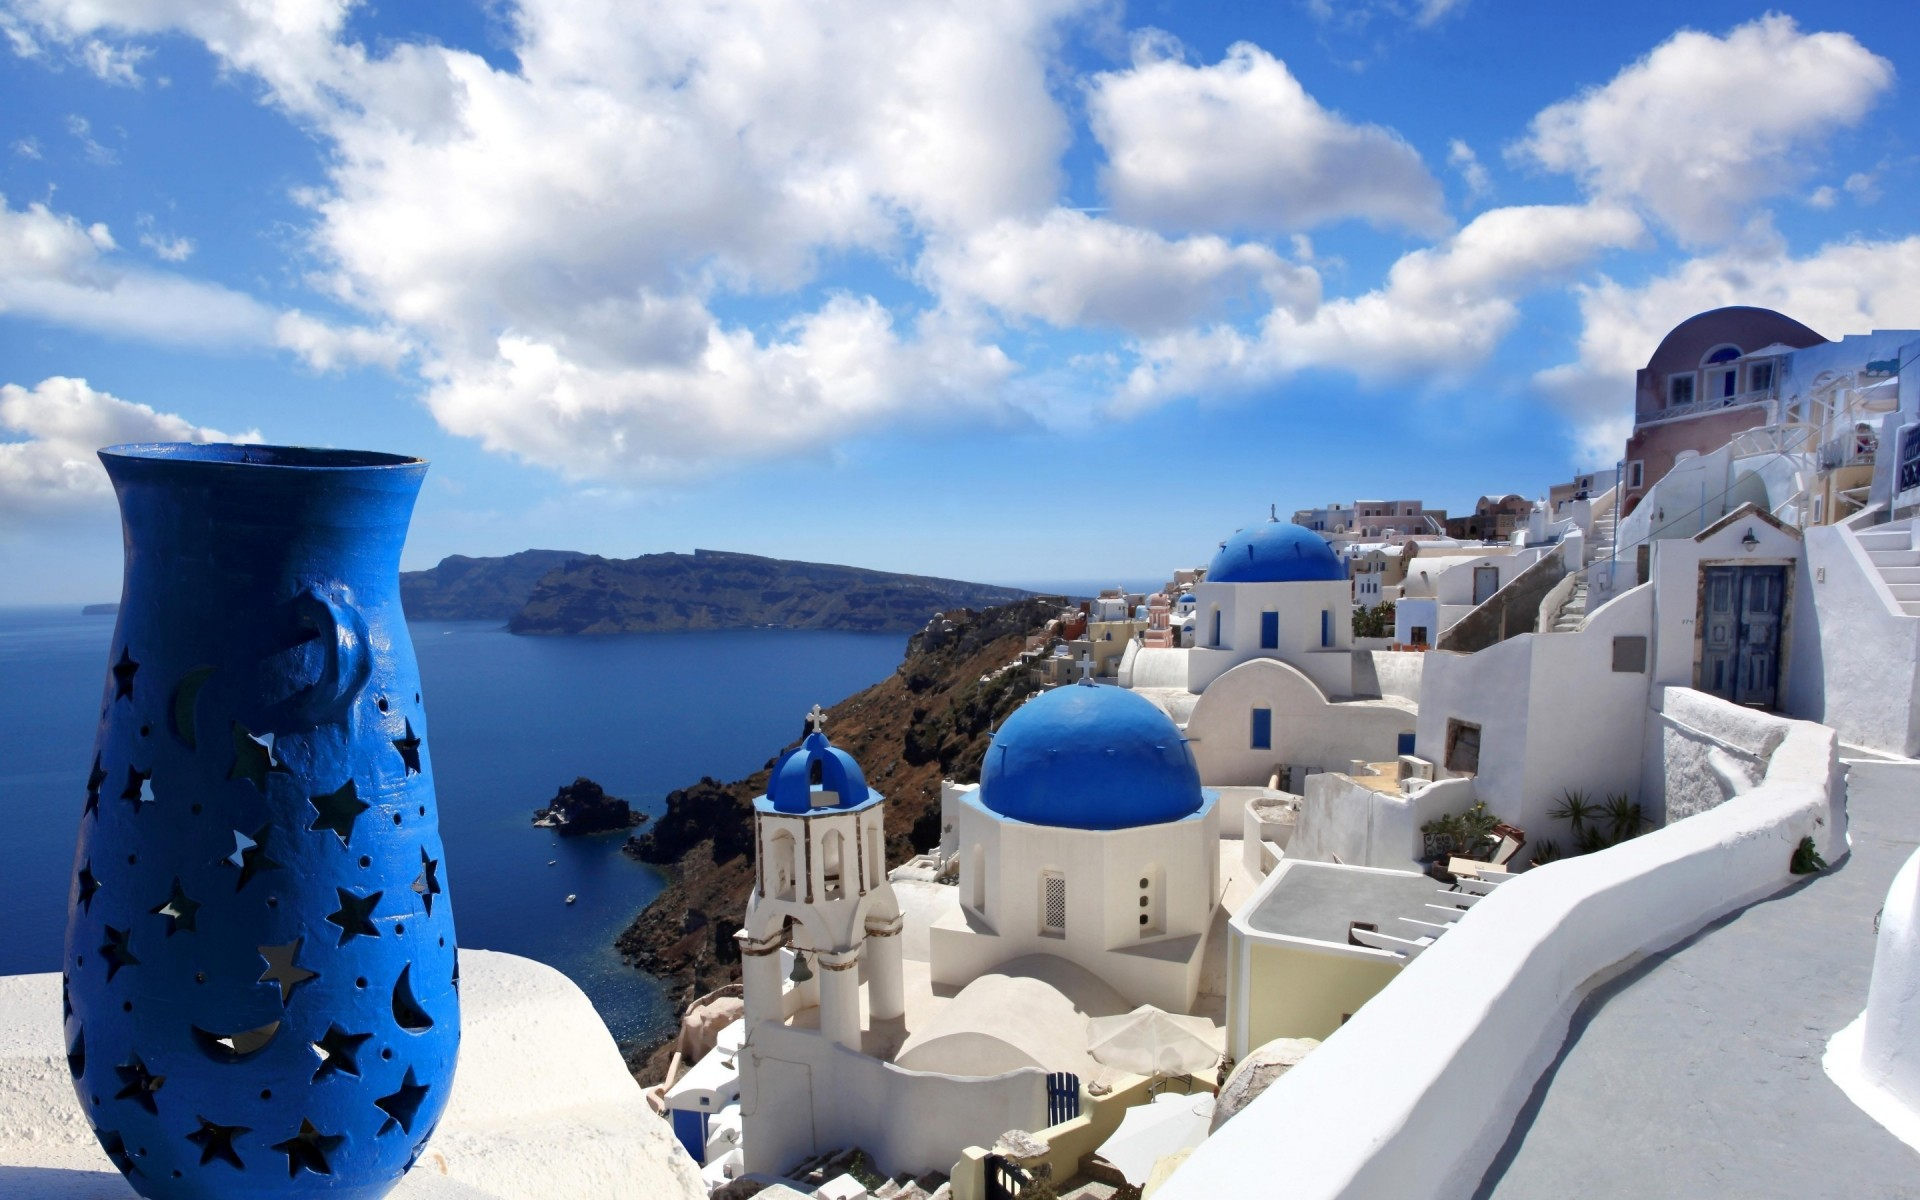 greece sea travel sky water architecture seashore vacation ocean outdoors summer traditional tourism santorini landscape exotic honeymoon